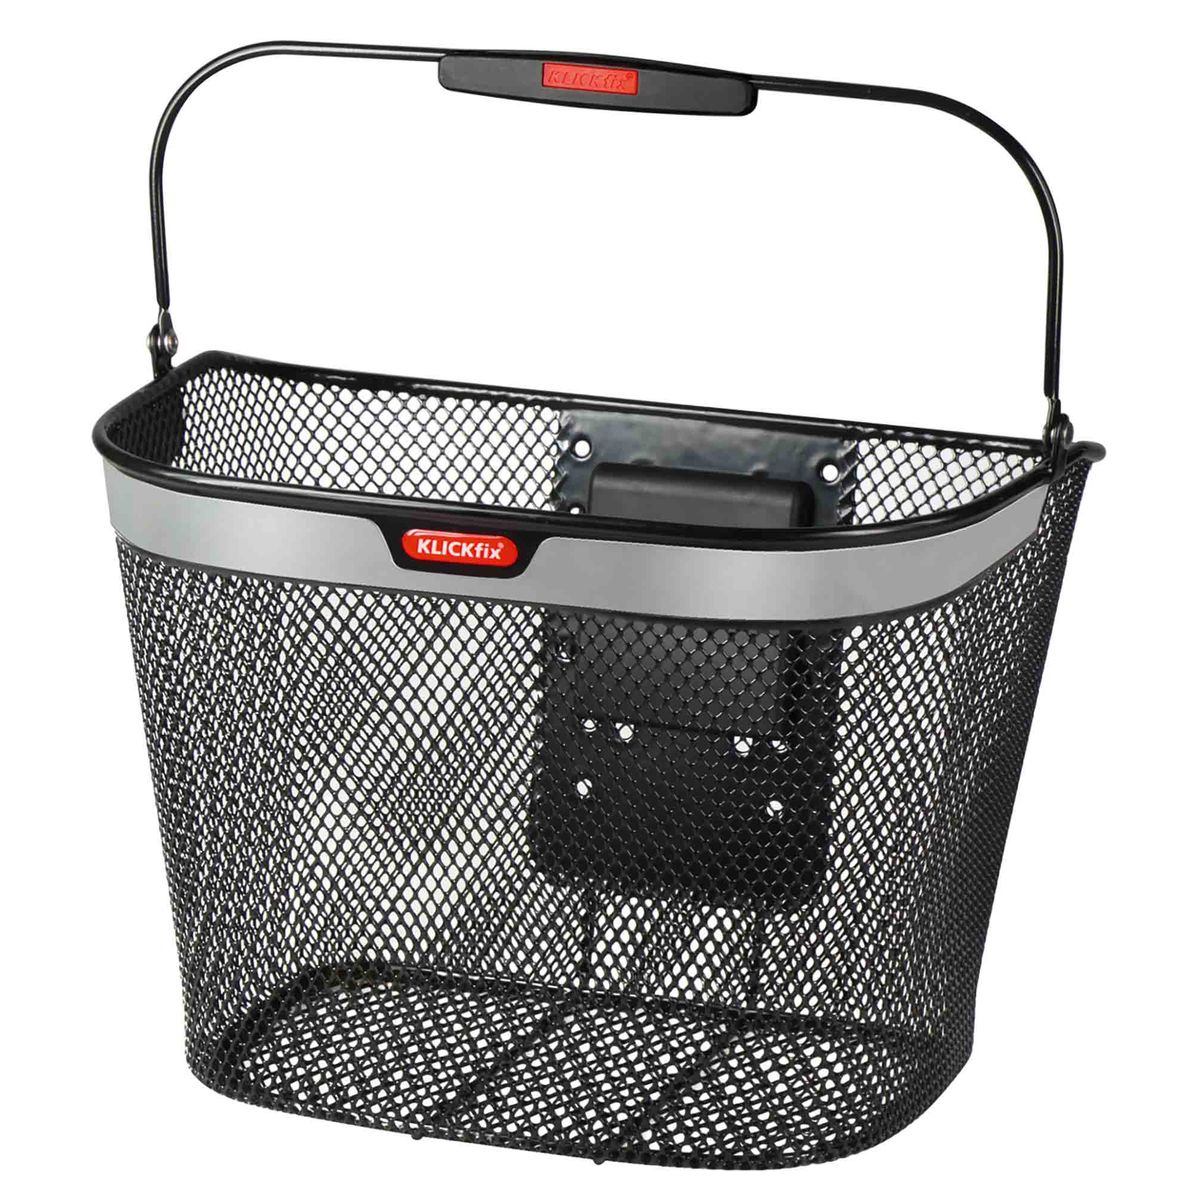 KLICKfix UNIKORB REFLECT front bicycle basket | Cykelkurve